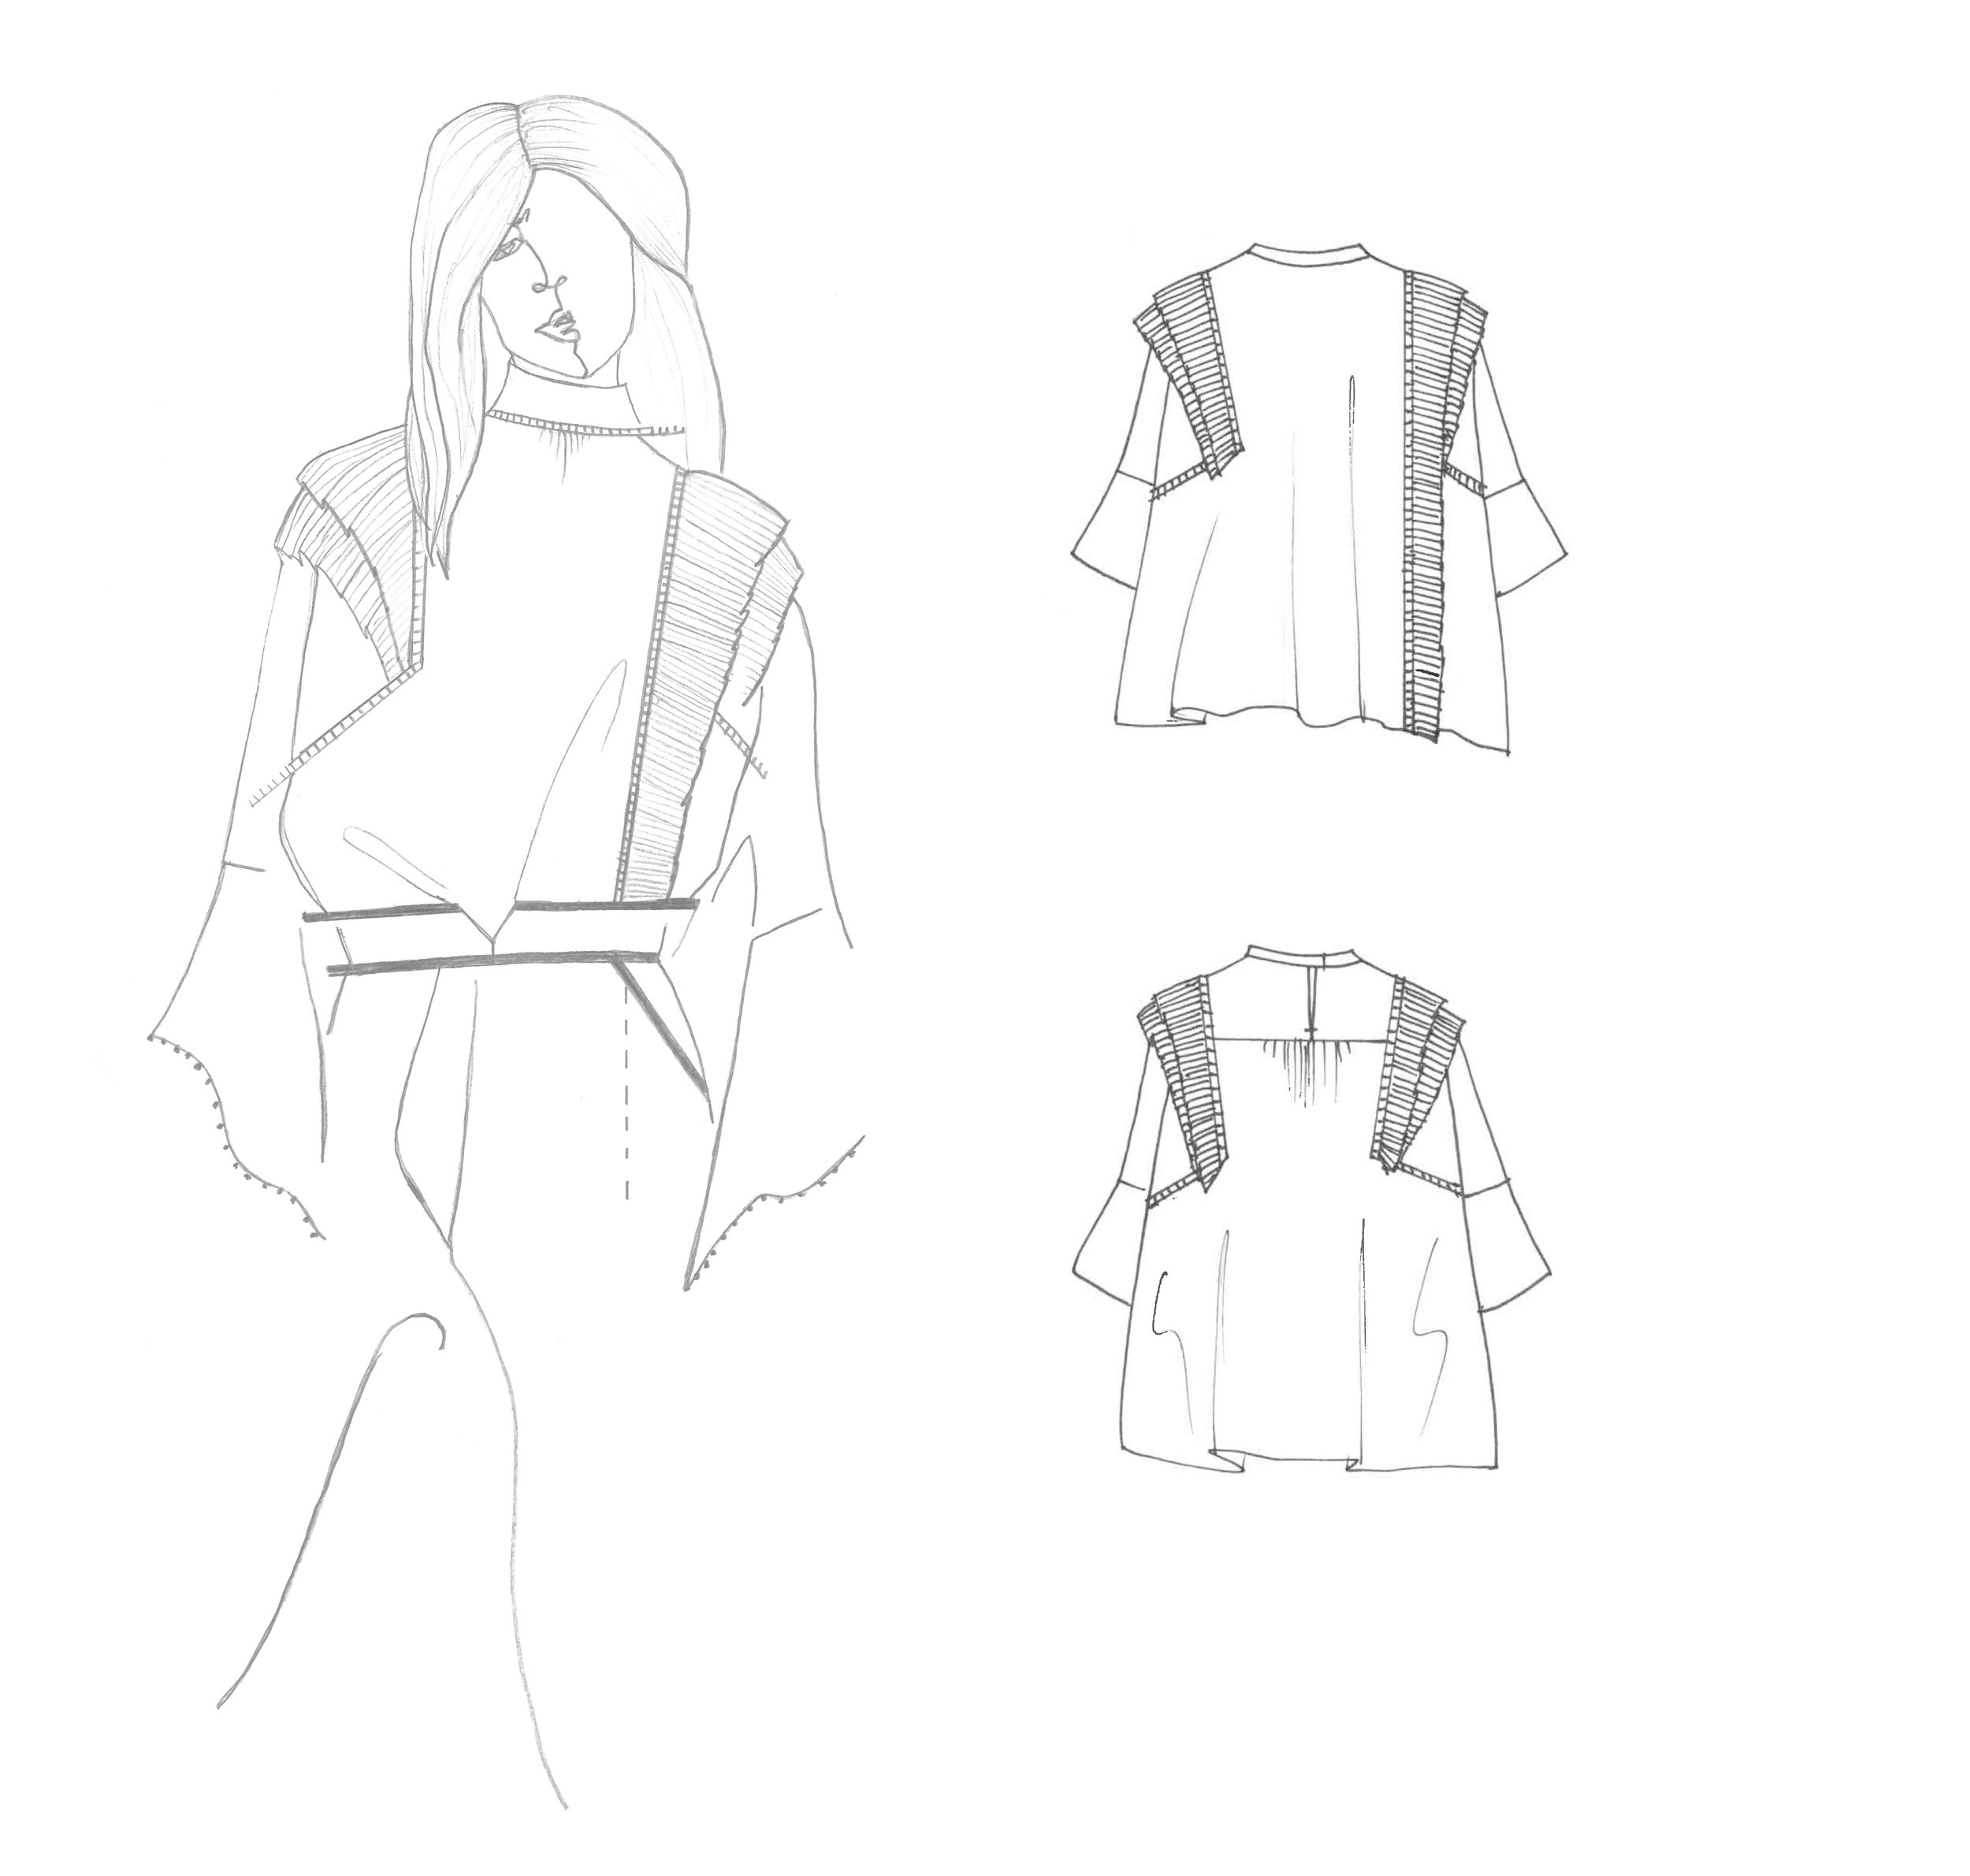 Original Illustrations and Trade Sketches for @morrisonclothing